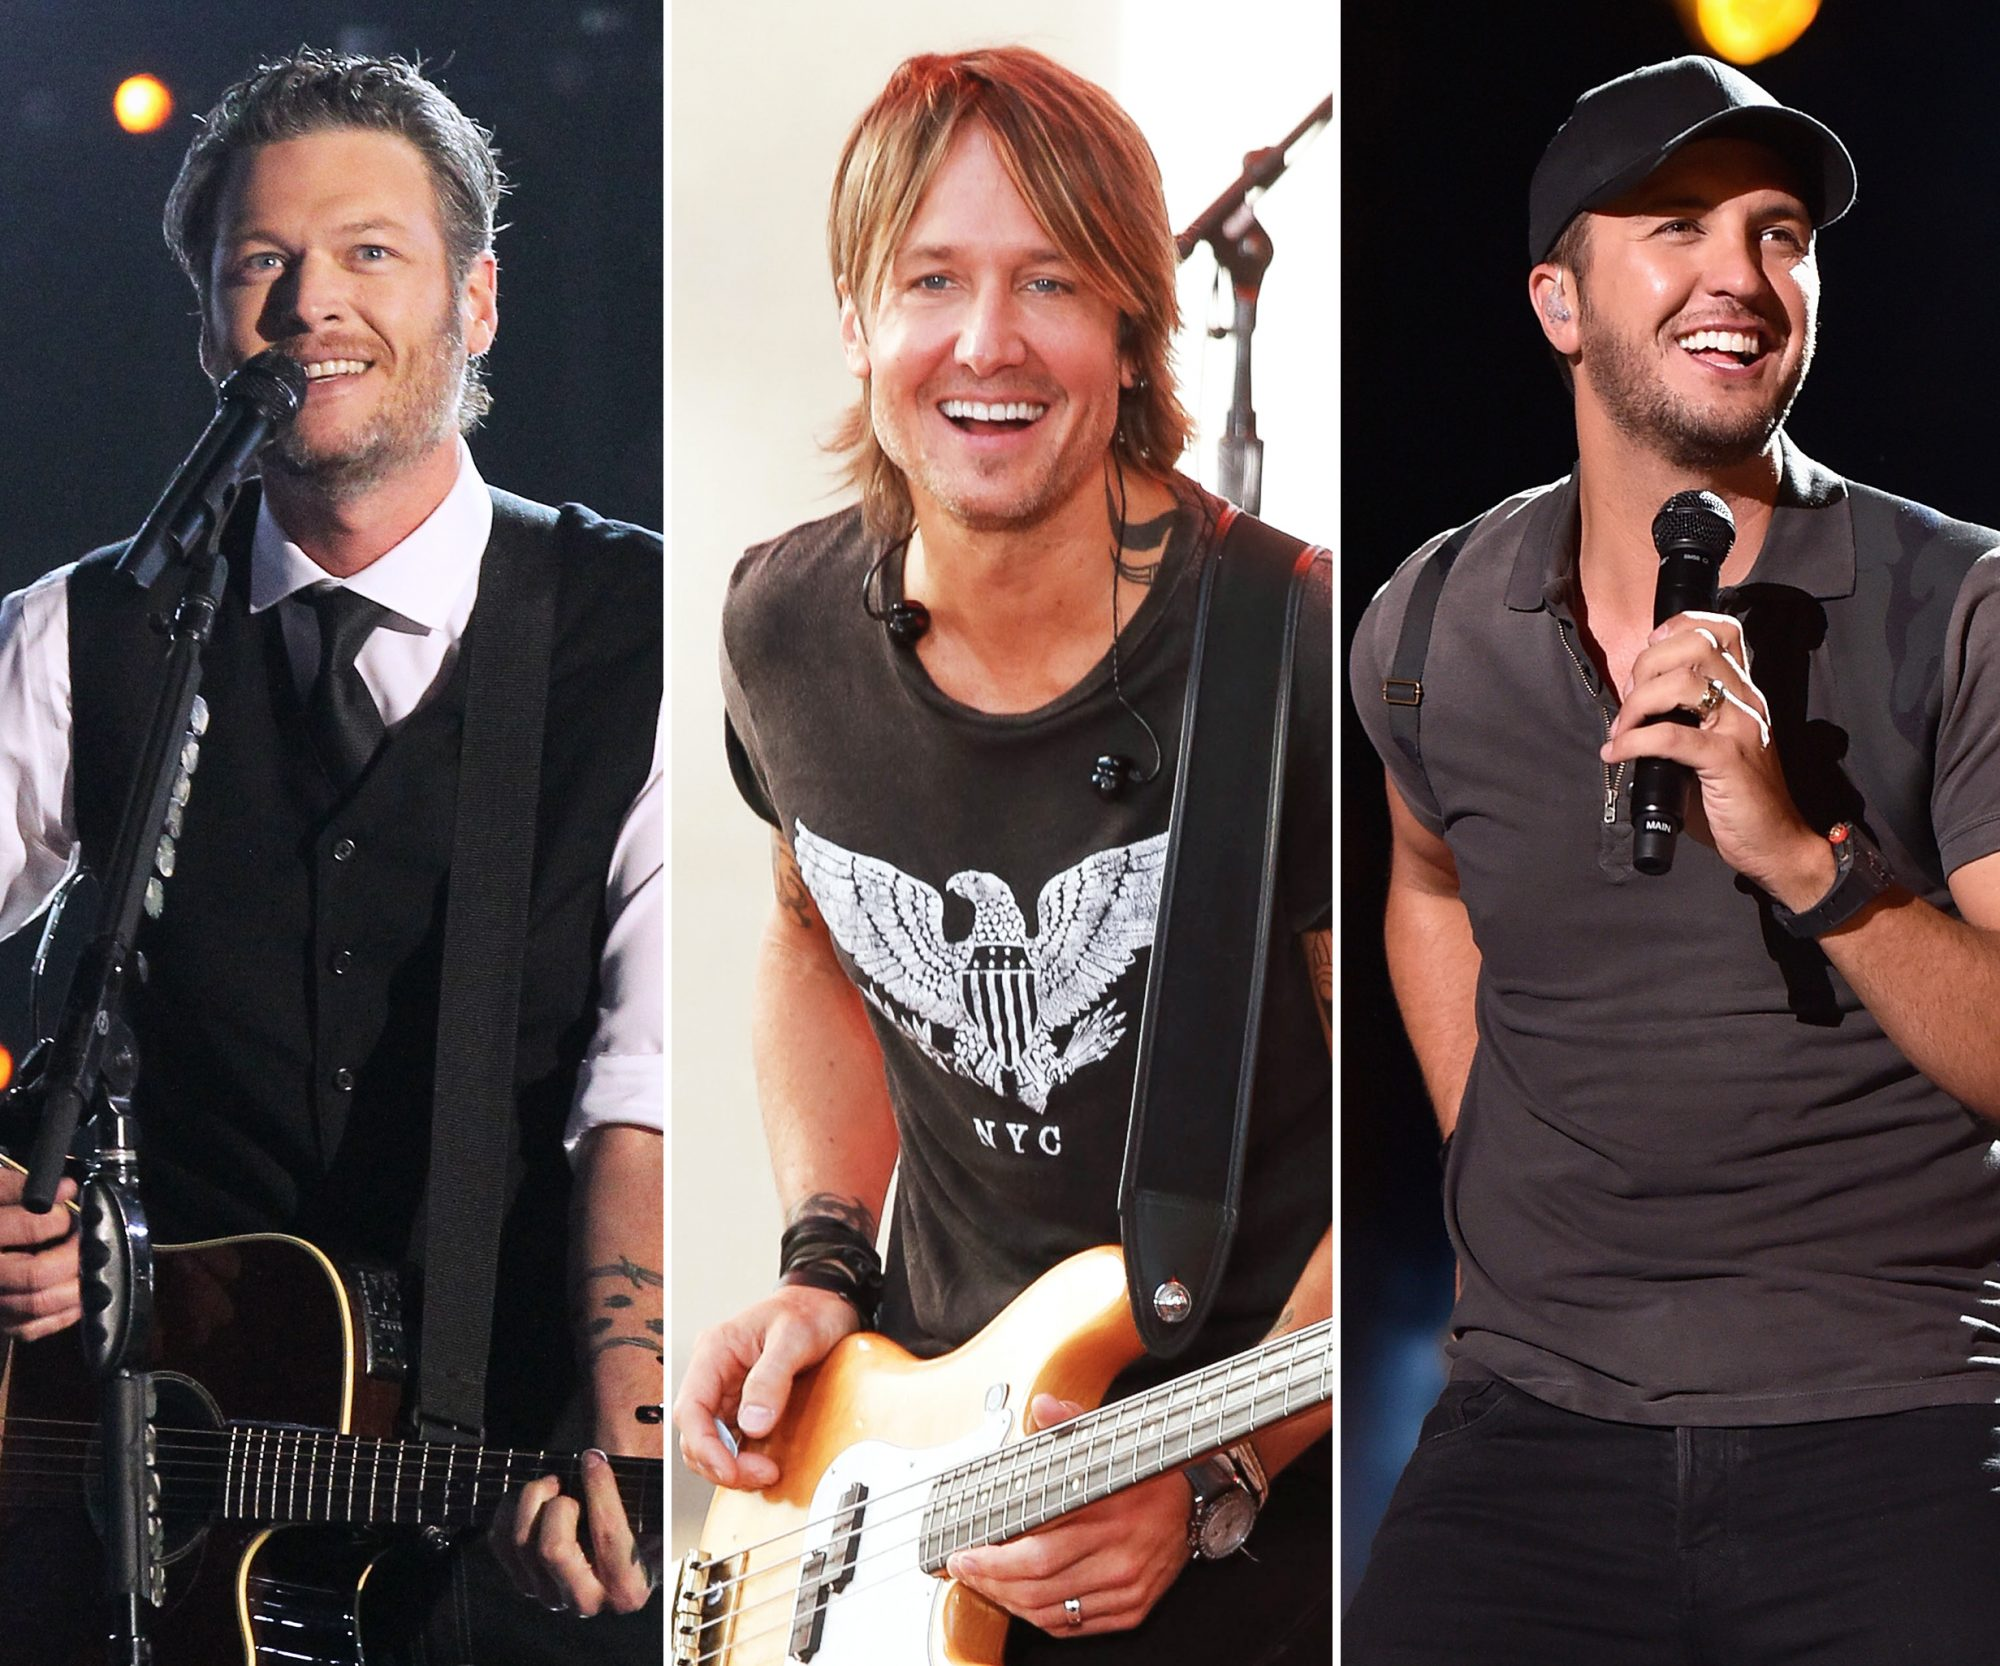 Blake Shelton, Keith Urban and Luke Bryan 3 Up - Lead 2016